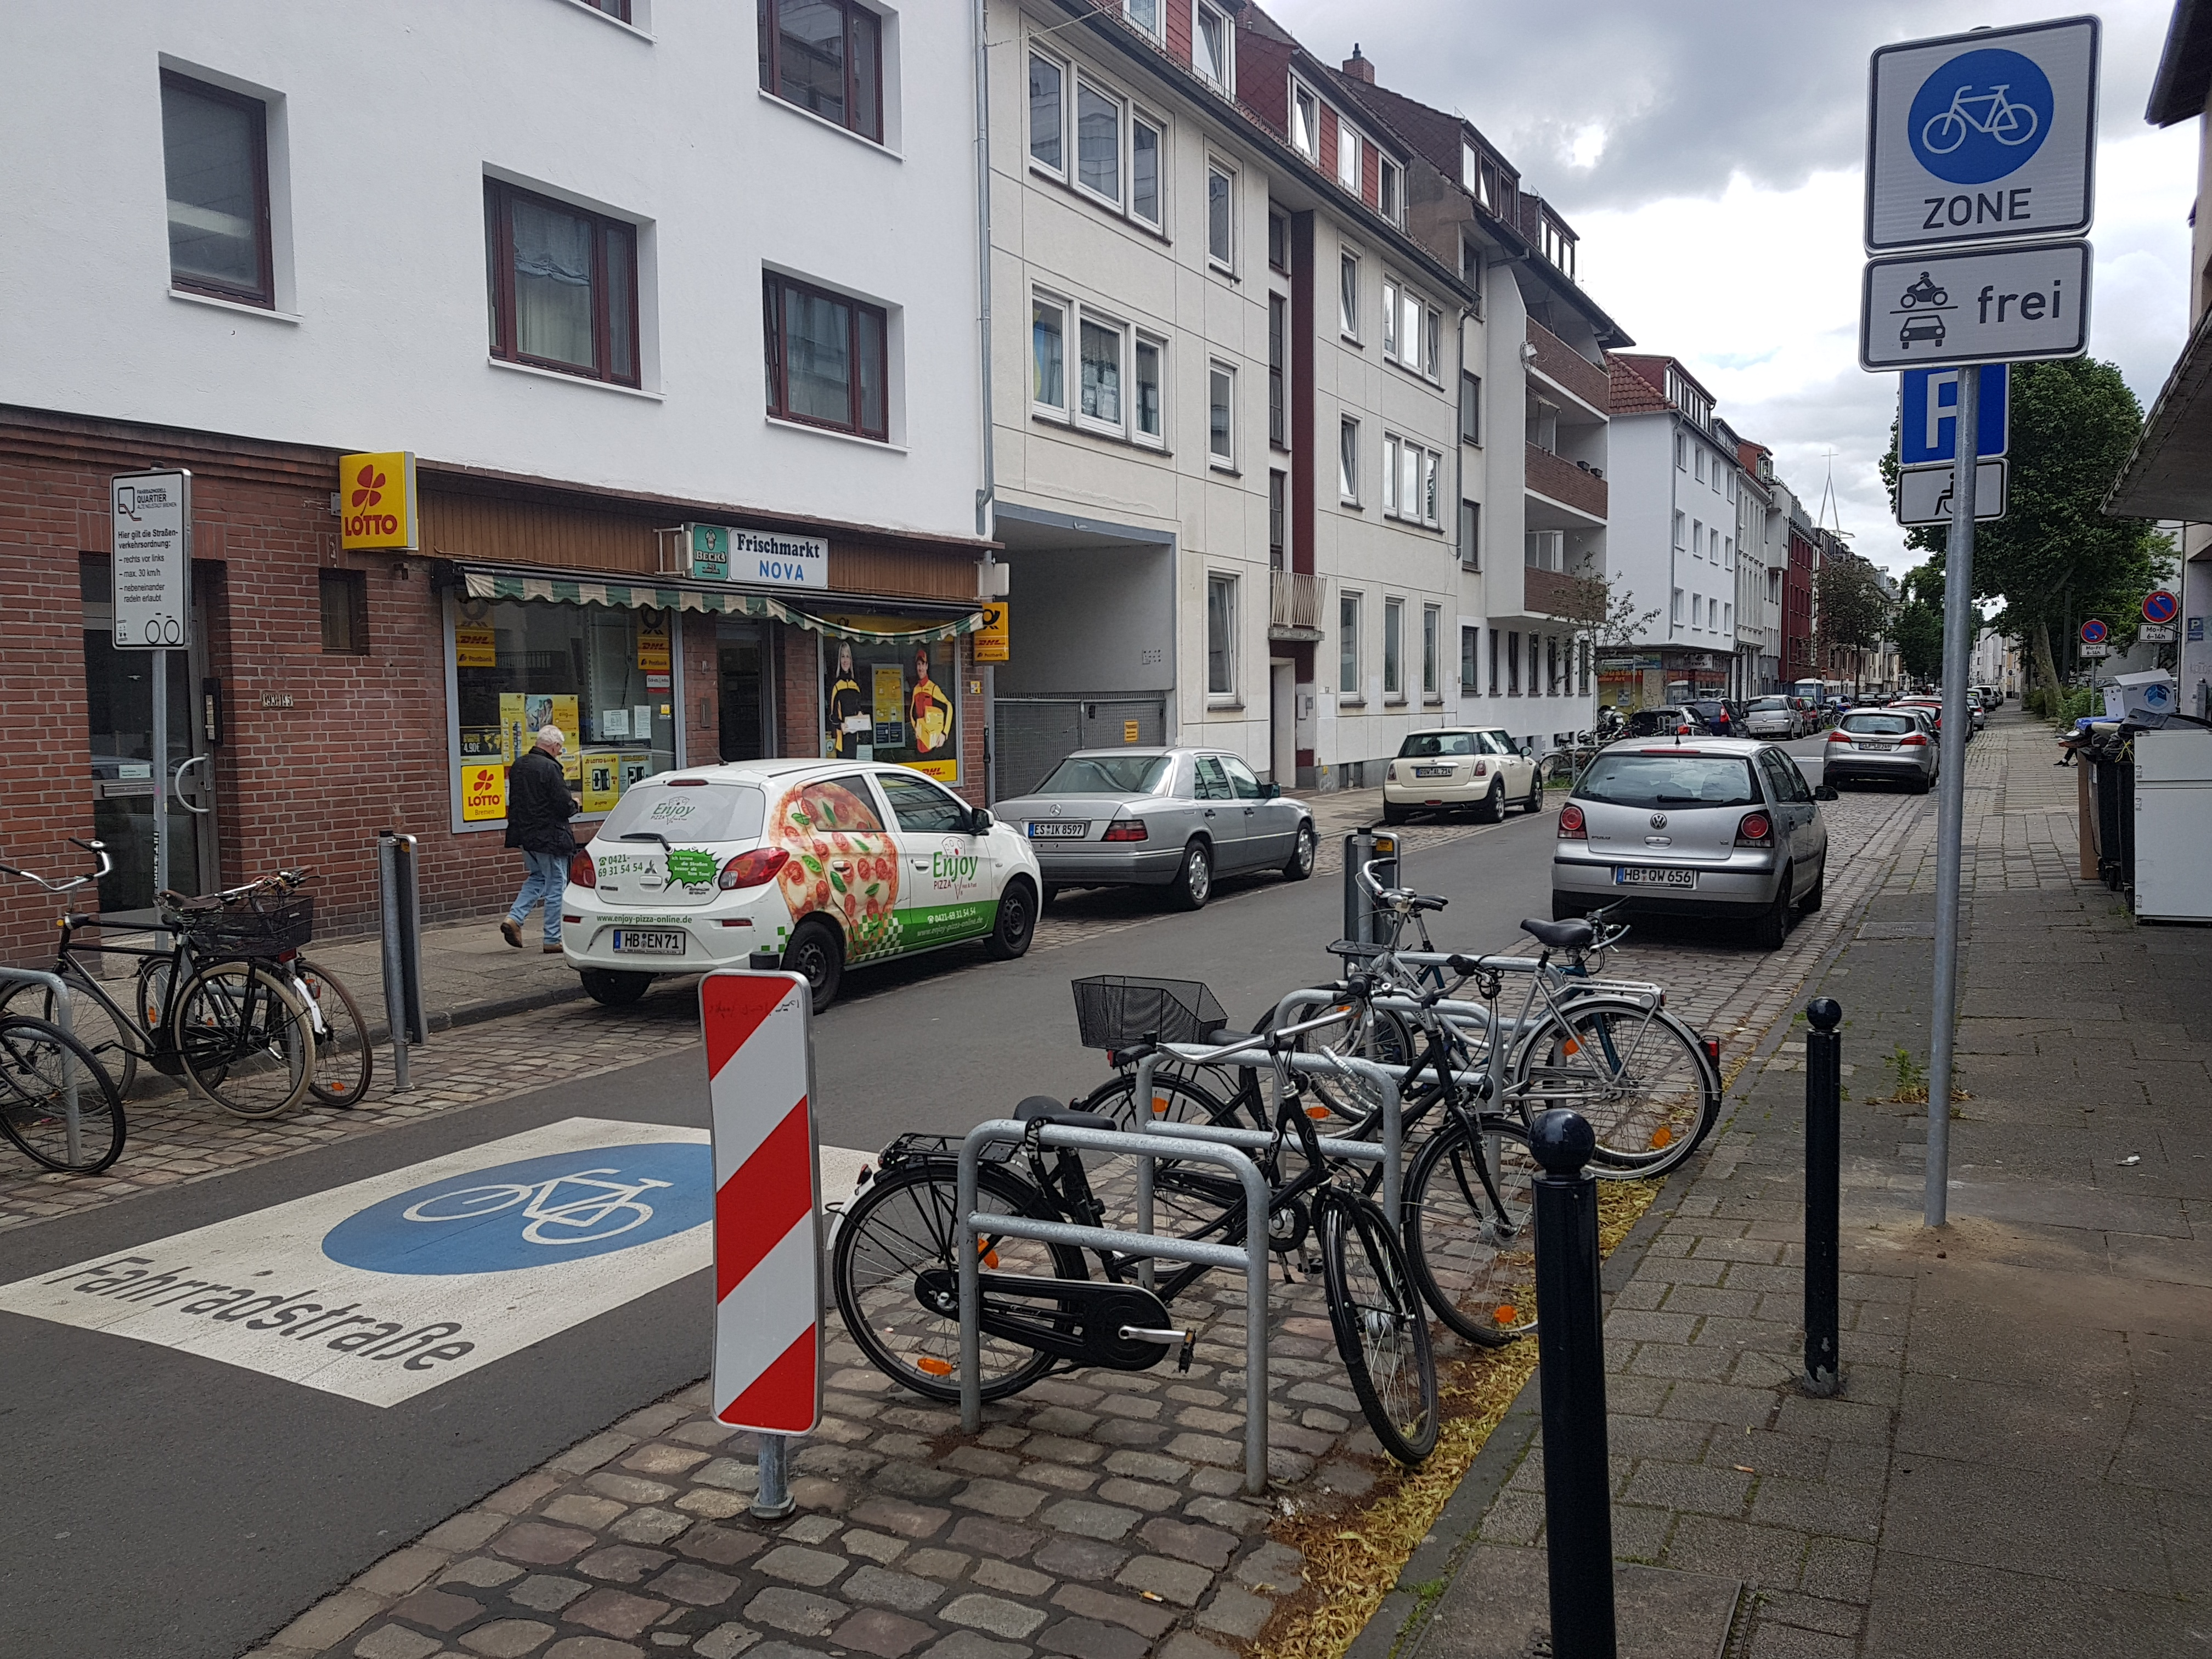 one of the 11 entries into the cycle-zone (Fahrradmodellquartier) Bremen